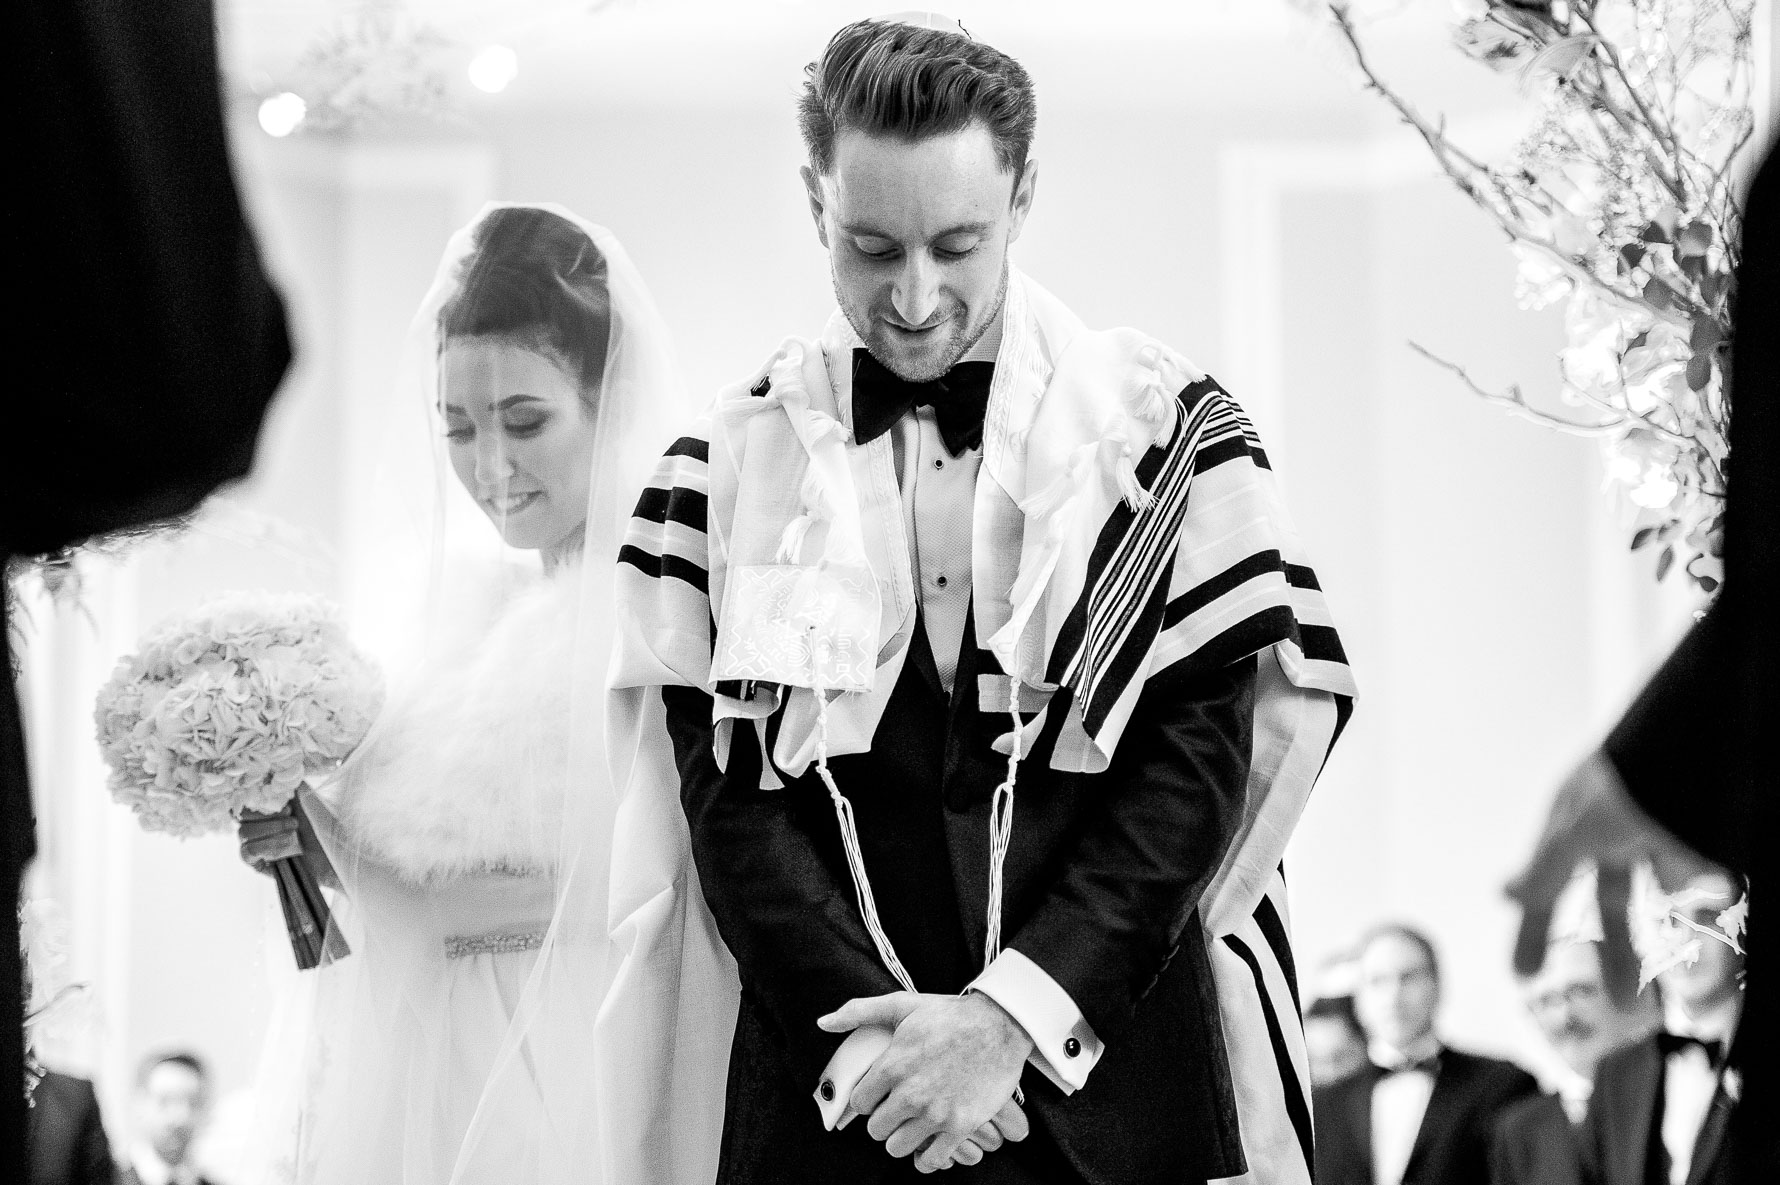 circling 7 times for jewish wedding ceremony